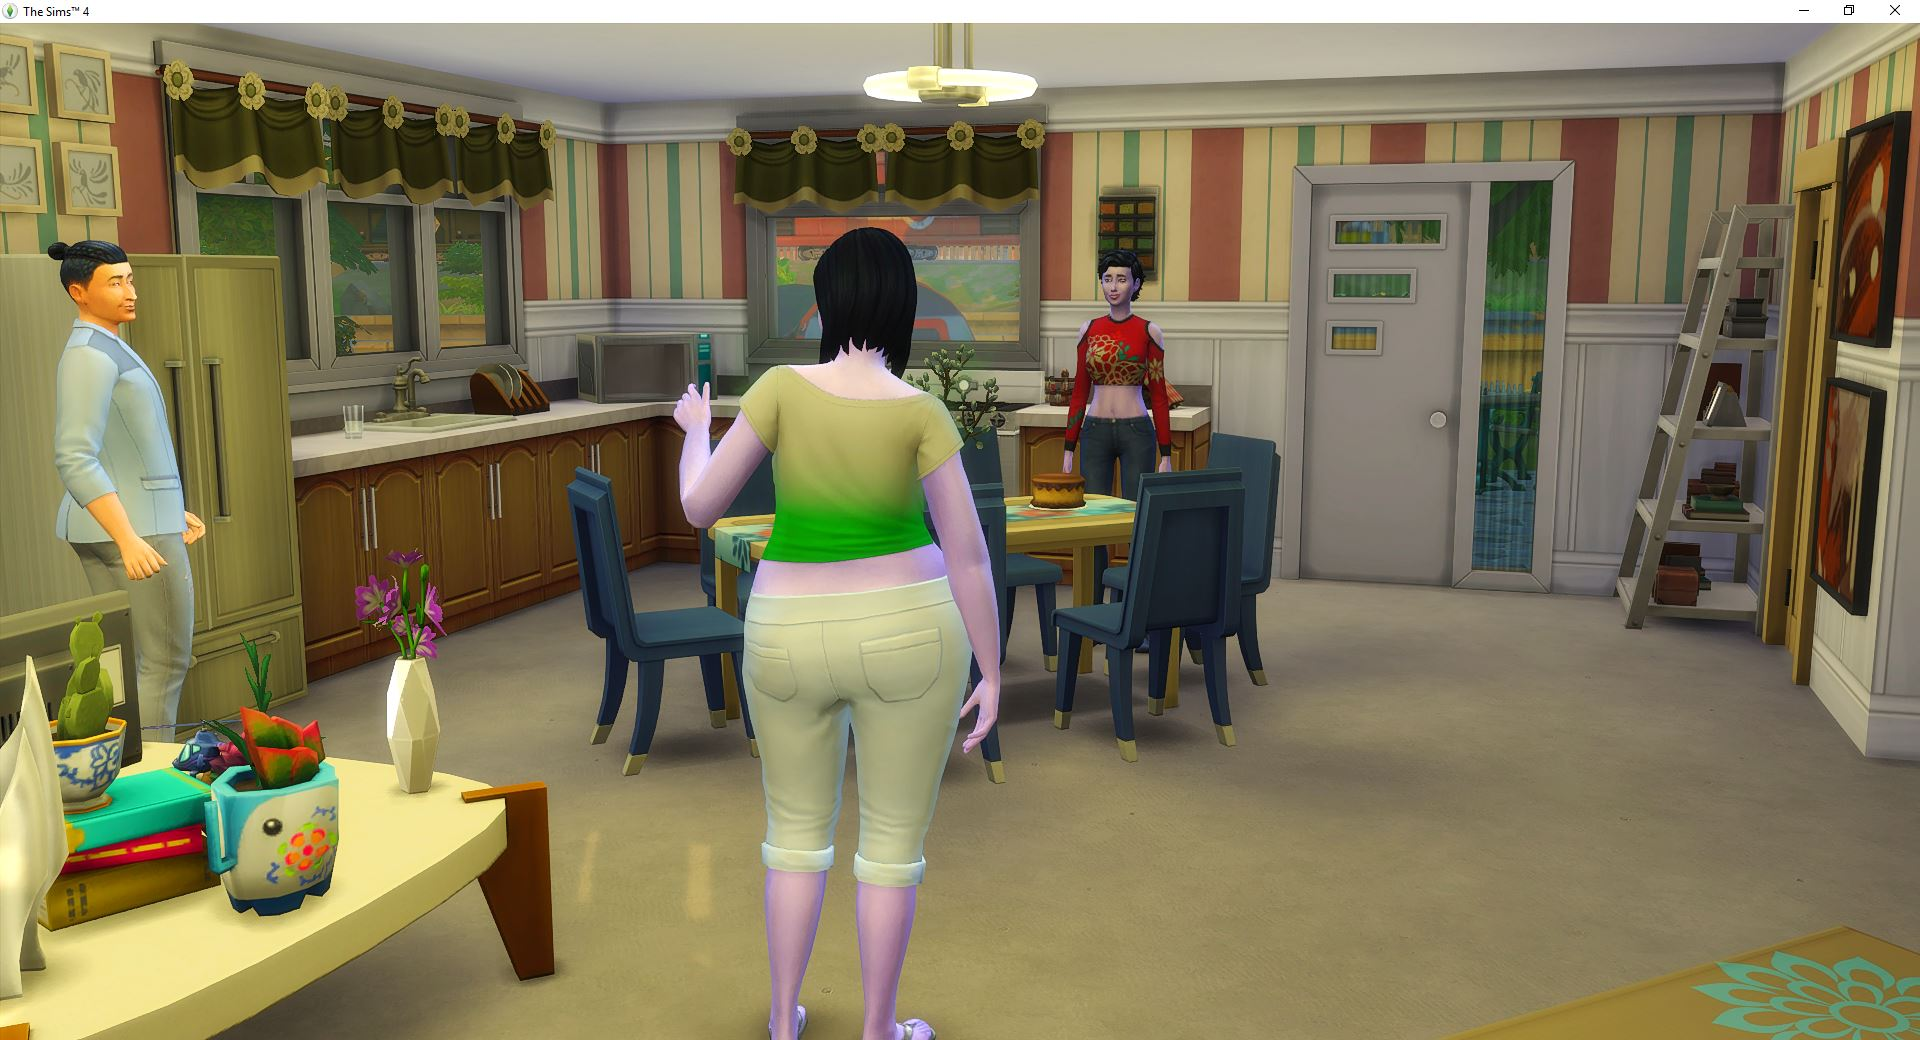 2019-03-08 19_33_04-The Sims™ 4